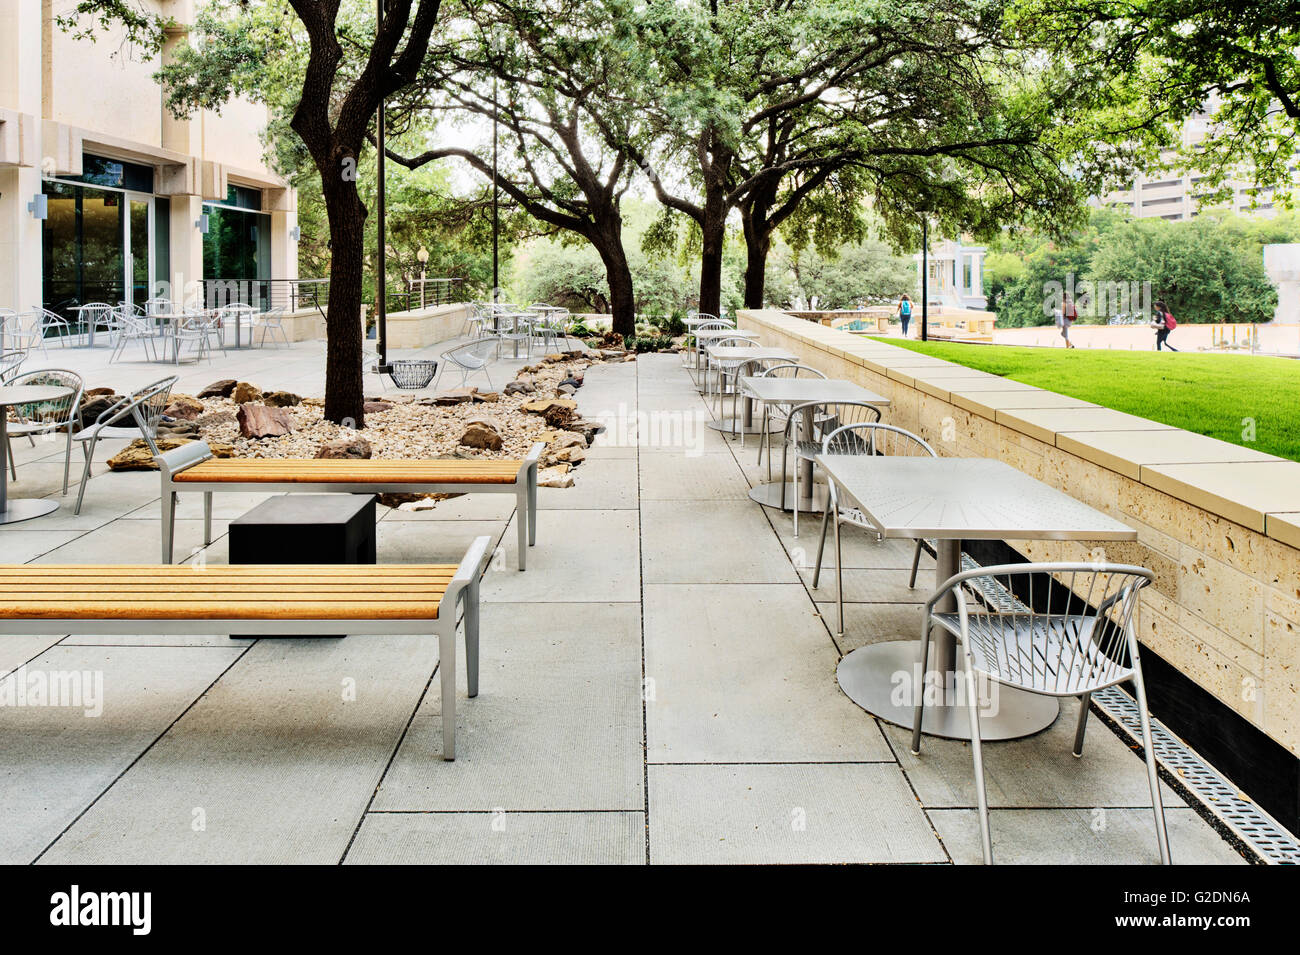 Outdoor Sitting Area Near University Building With Small Tables And Wood  Benches